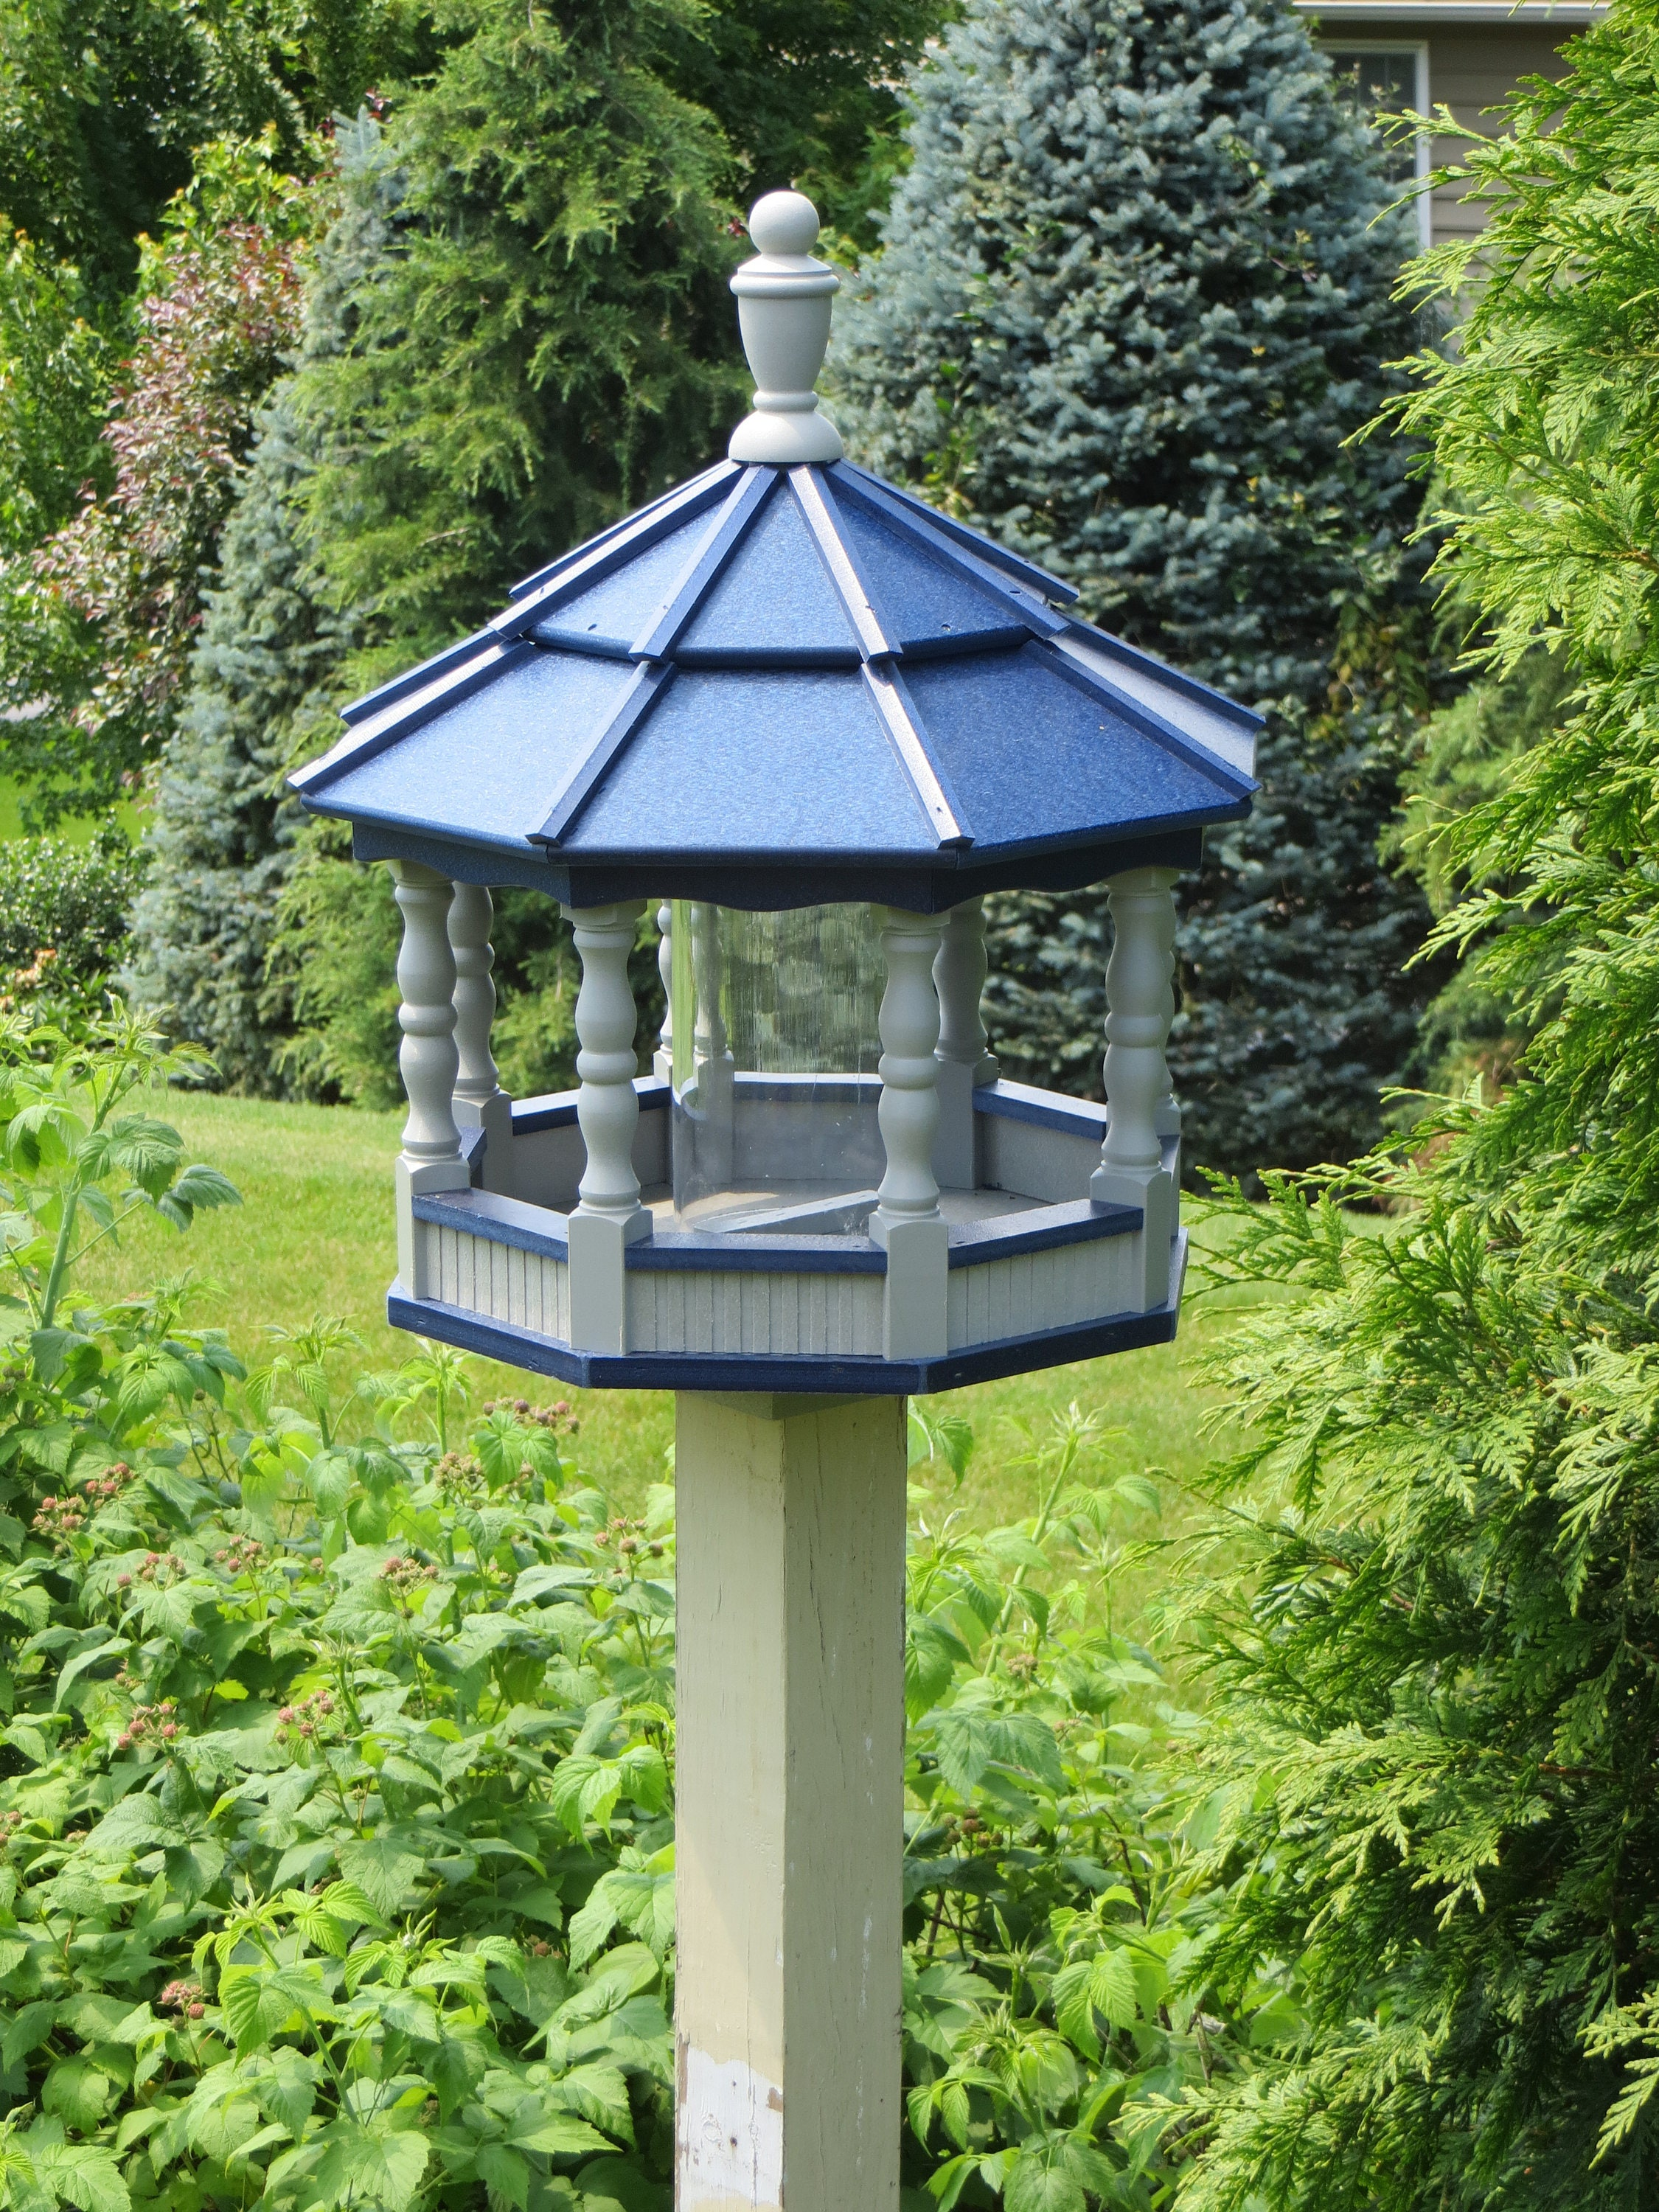 gazebo artline feeder plastic house bird large